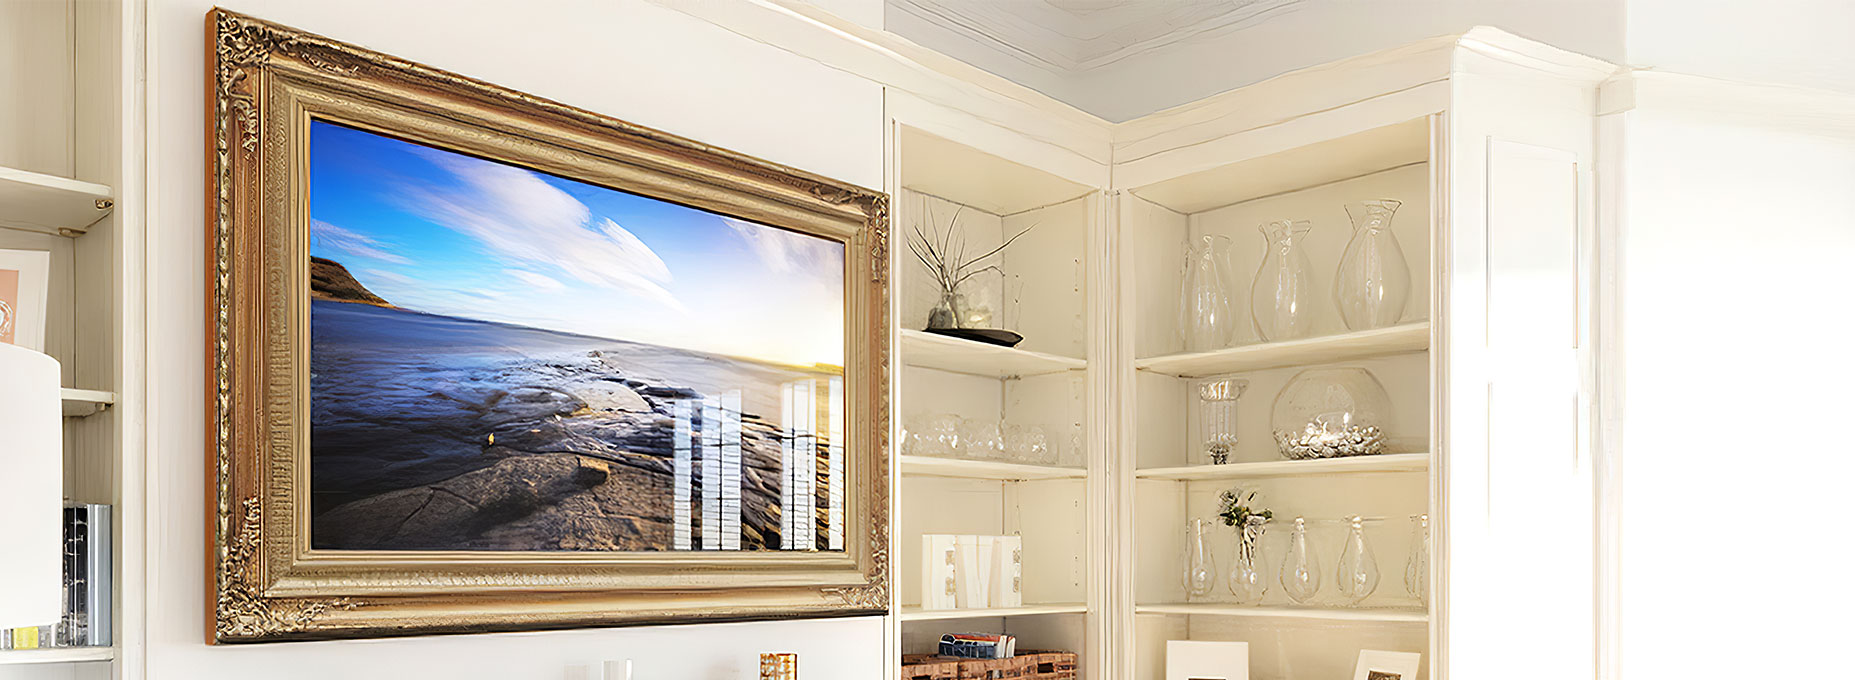 Decorative framed TV fit for a traditional interior design.